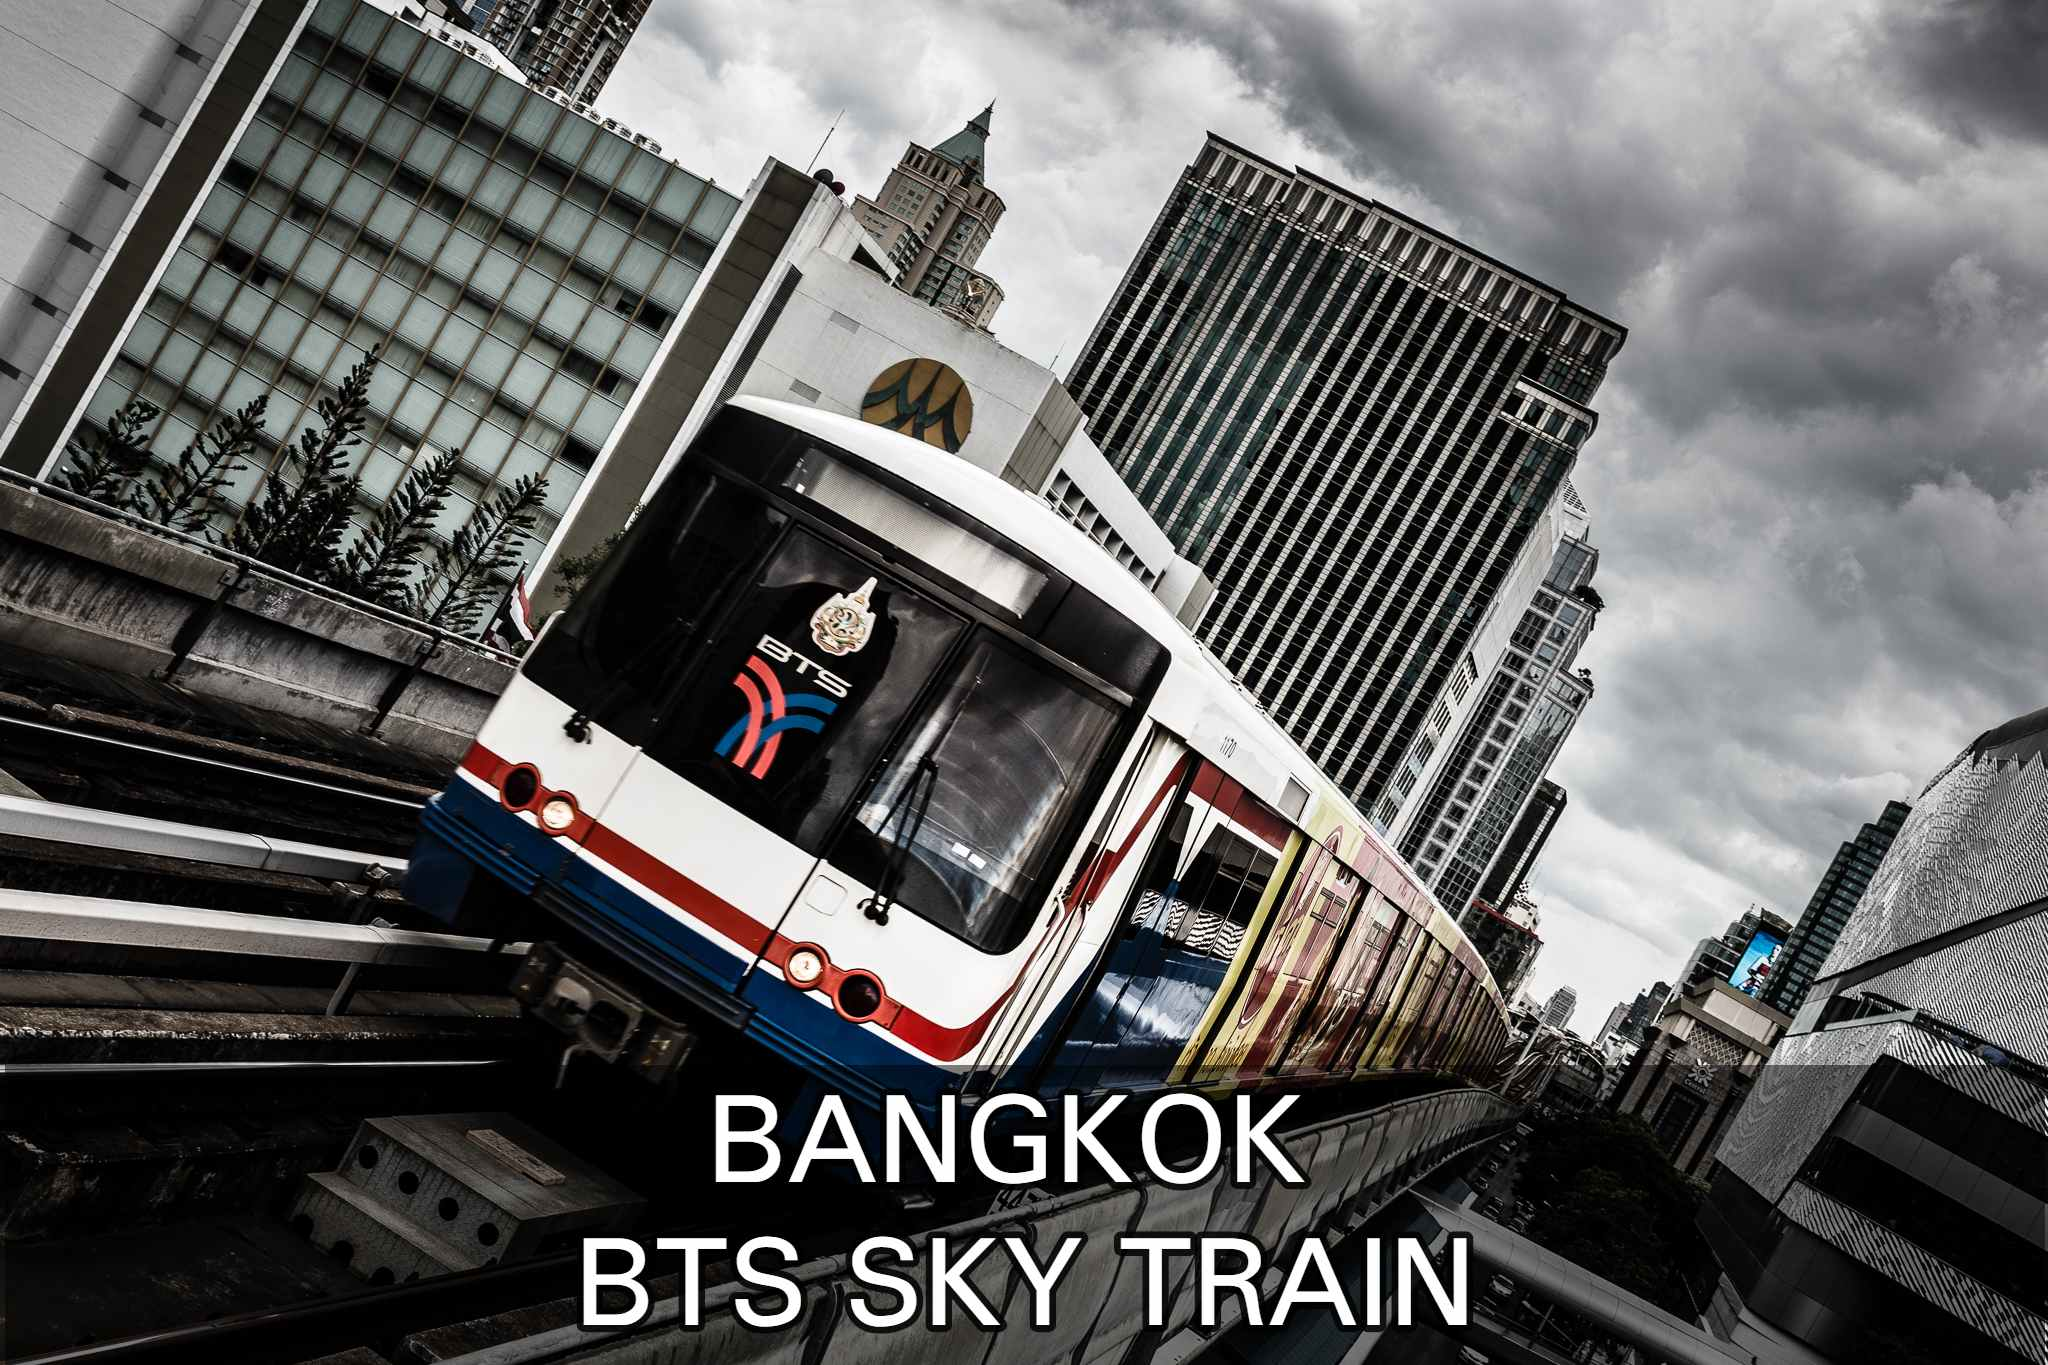 Read more about the BTS Sky Train in Bangkok here.